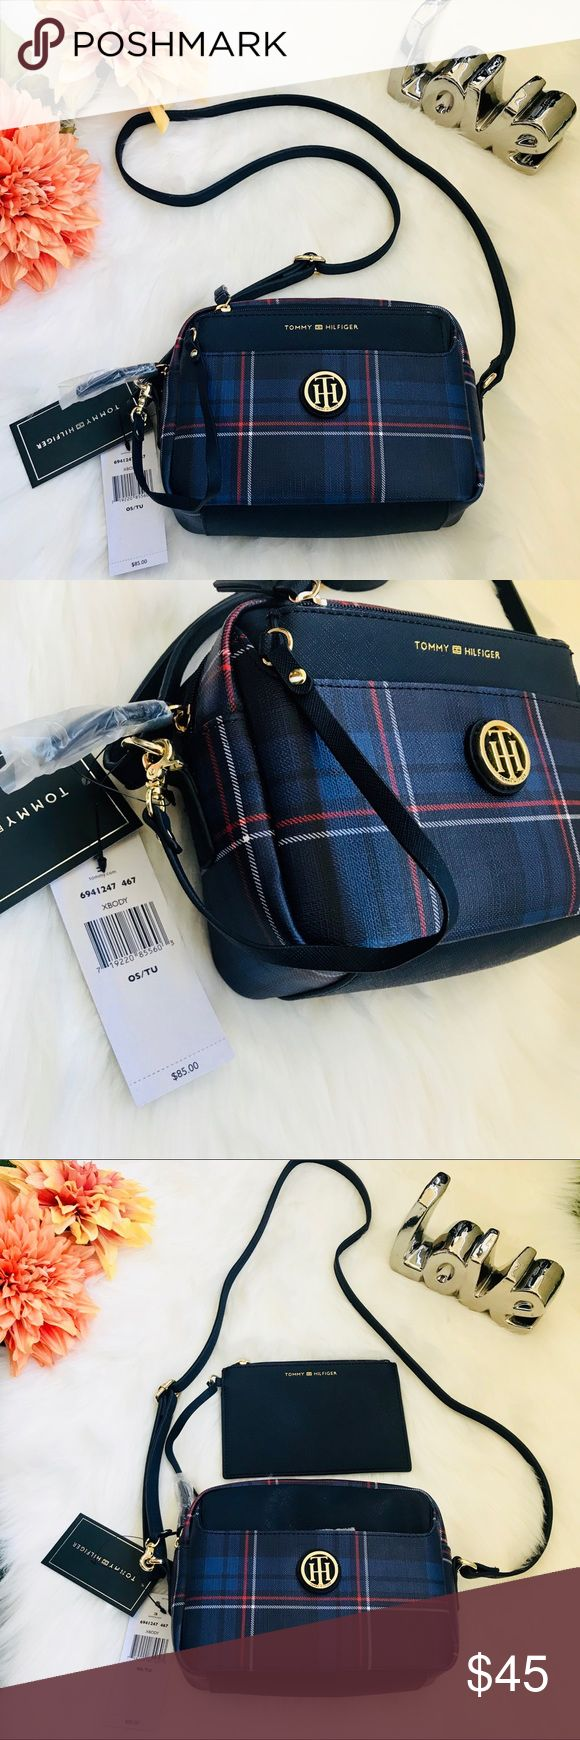 NWT Tommy Hilfiger Crossbody bag brand new vintage style Tommy Hilfiger Crossbody Bag with detachable mini wallet. Very Cute with jeans or dresses. Fits phone, wallet, make up etc. Retail $85 Tommy Hilfiger Bags Crossbody Bags